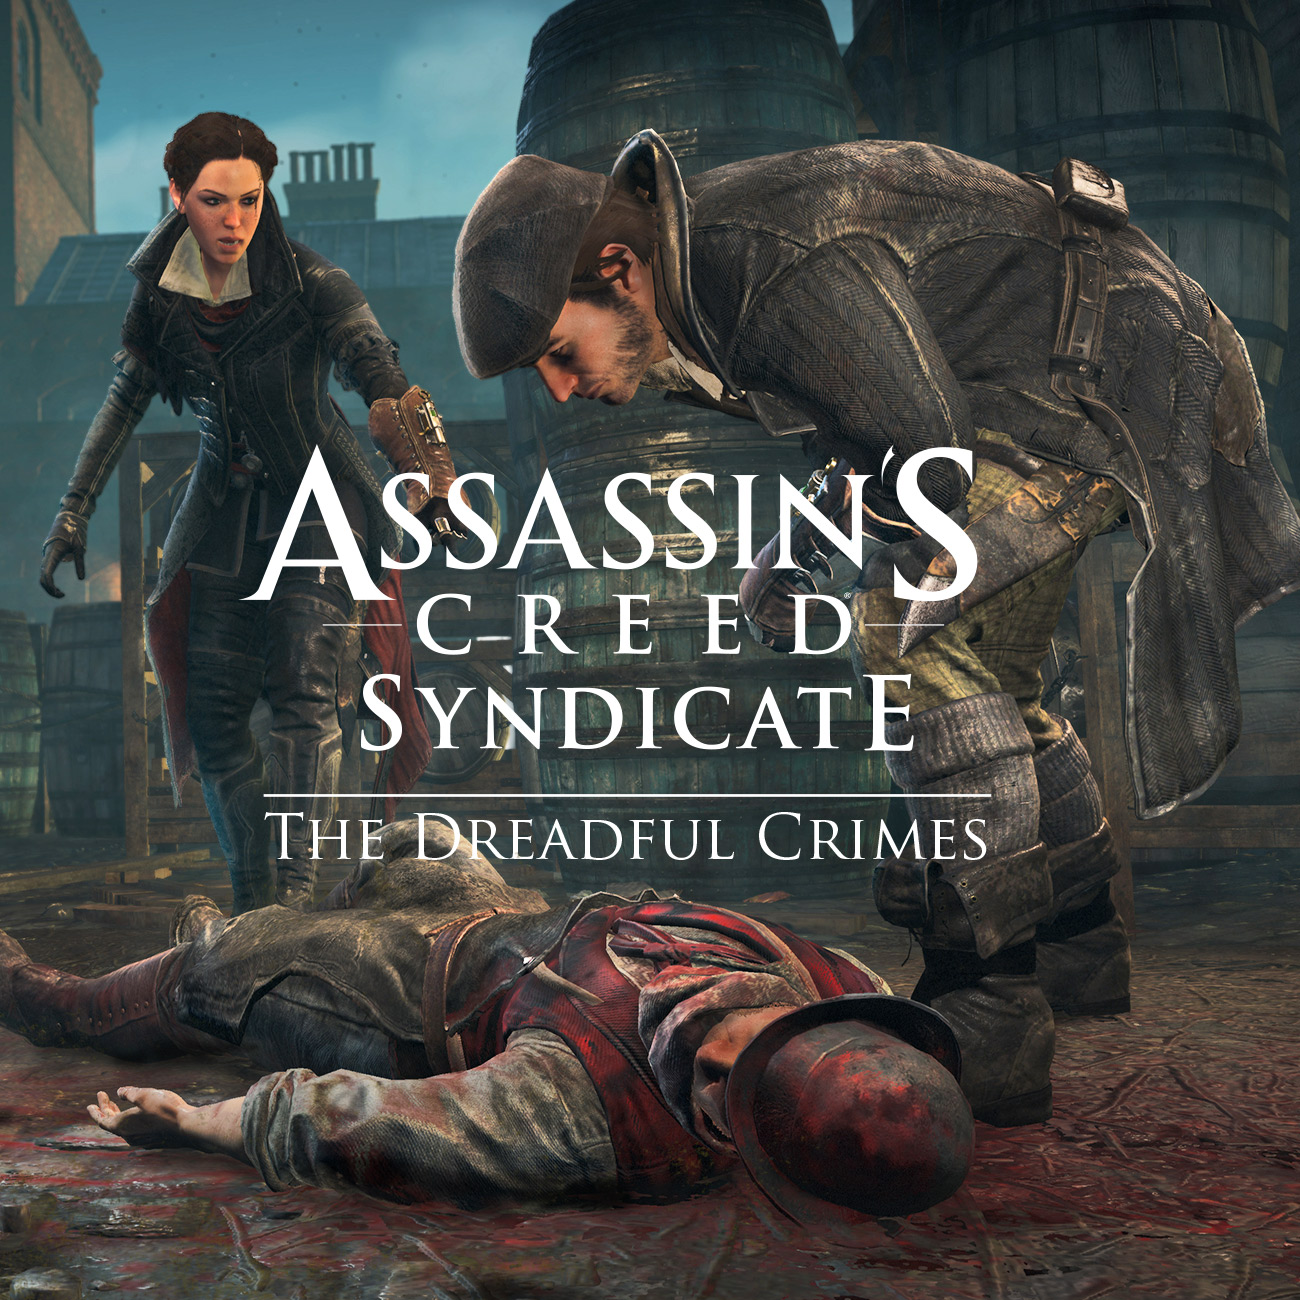 http://img5.downloadha.com/hosein/Game/April%202016/13/Assassins-Creed-Syndicate-The-Dreadful-Crimes-pc-cover-large.jpg